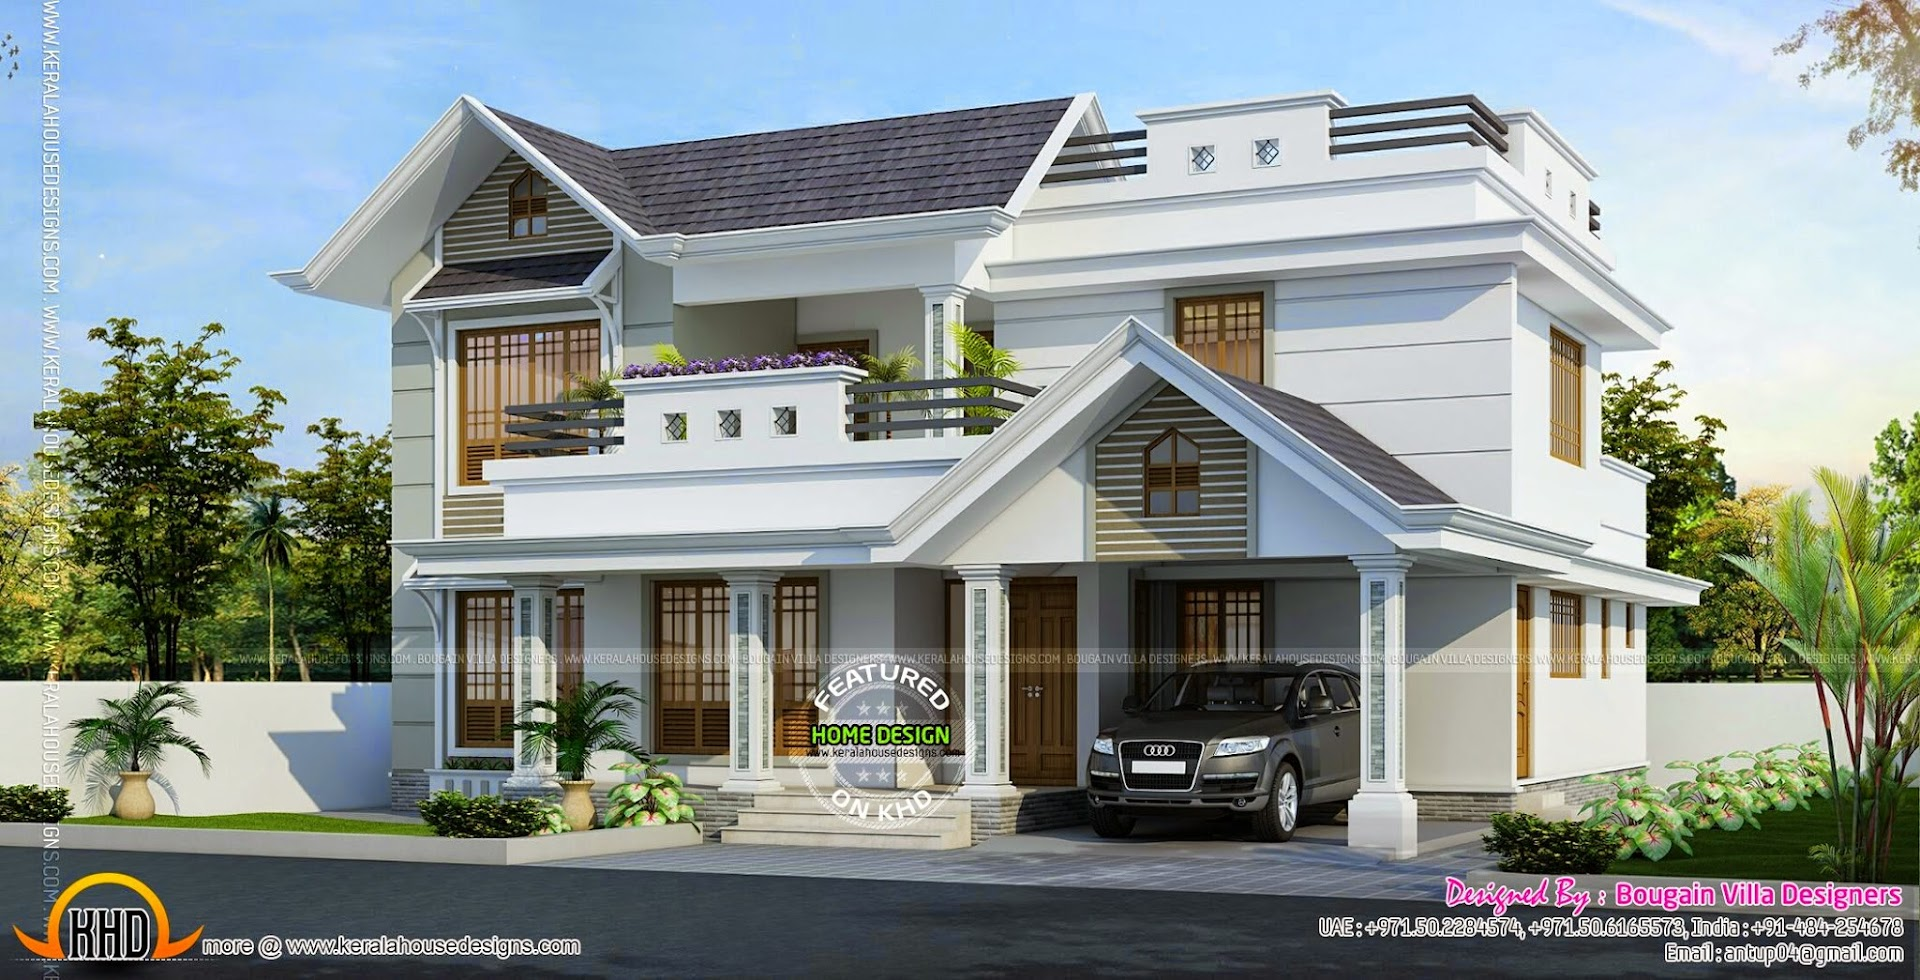 Classic style 4 bedroom house kerala home design and for Classic architecture homes